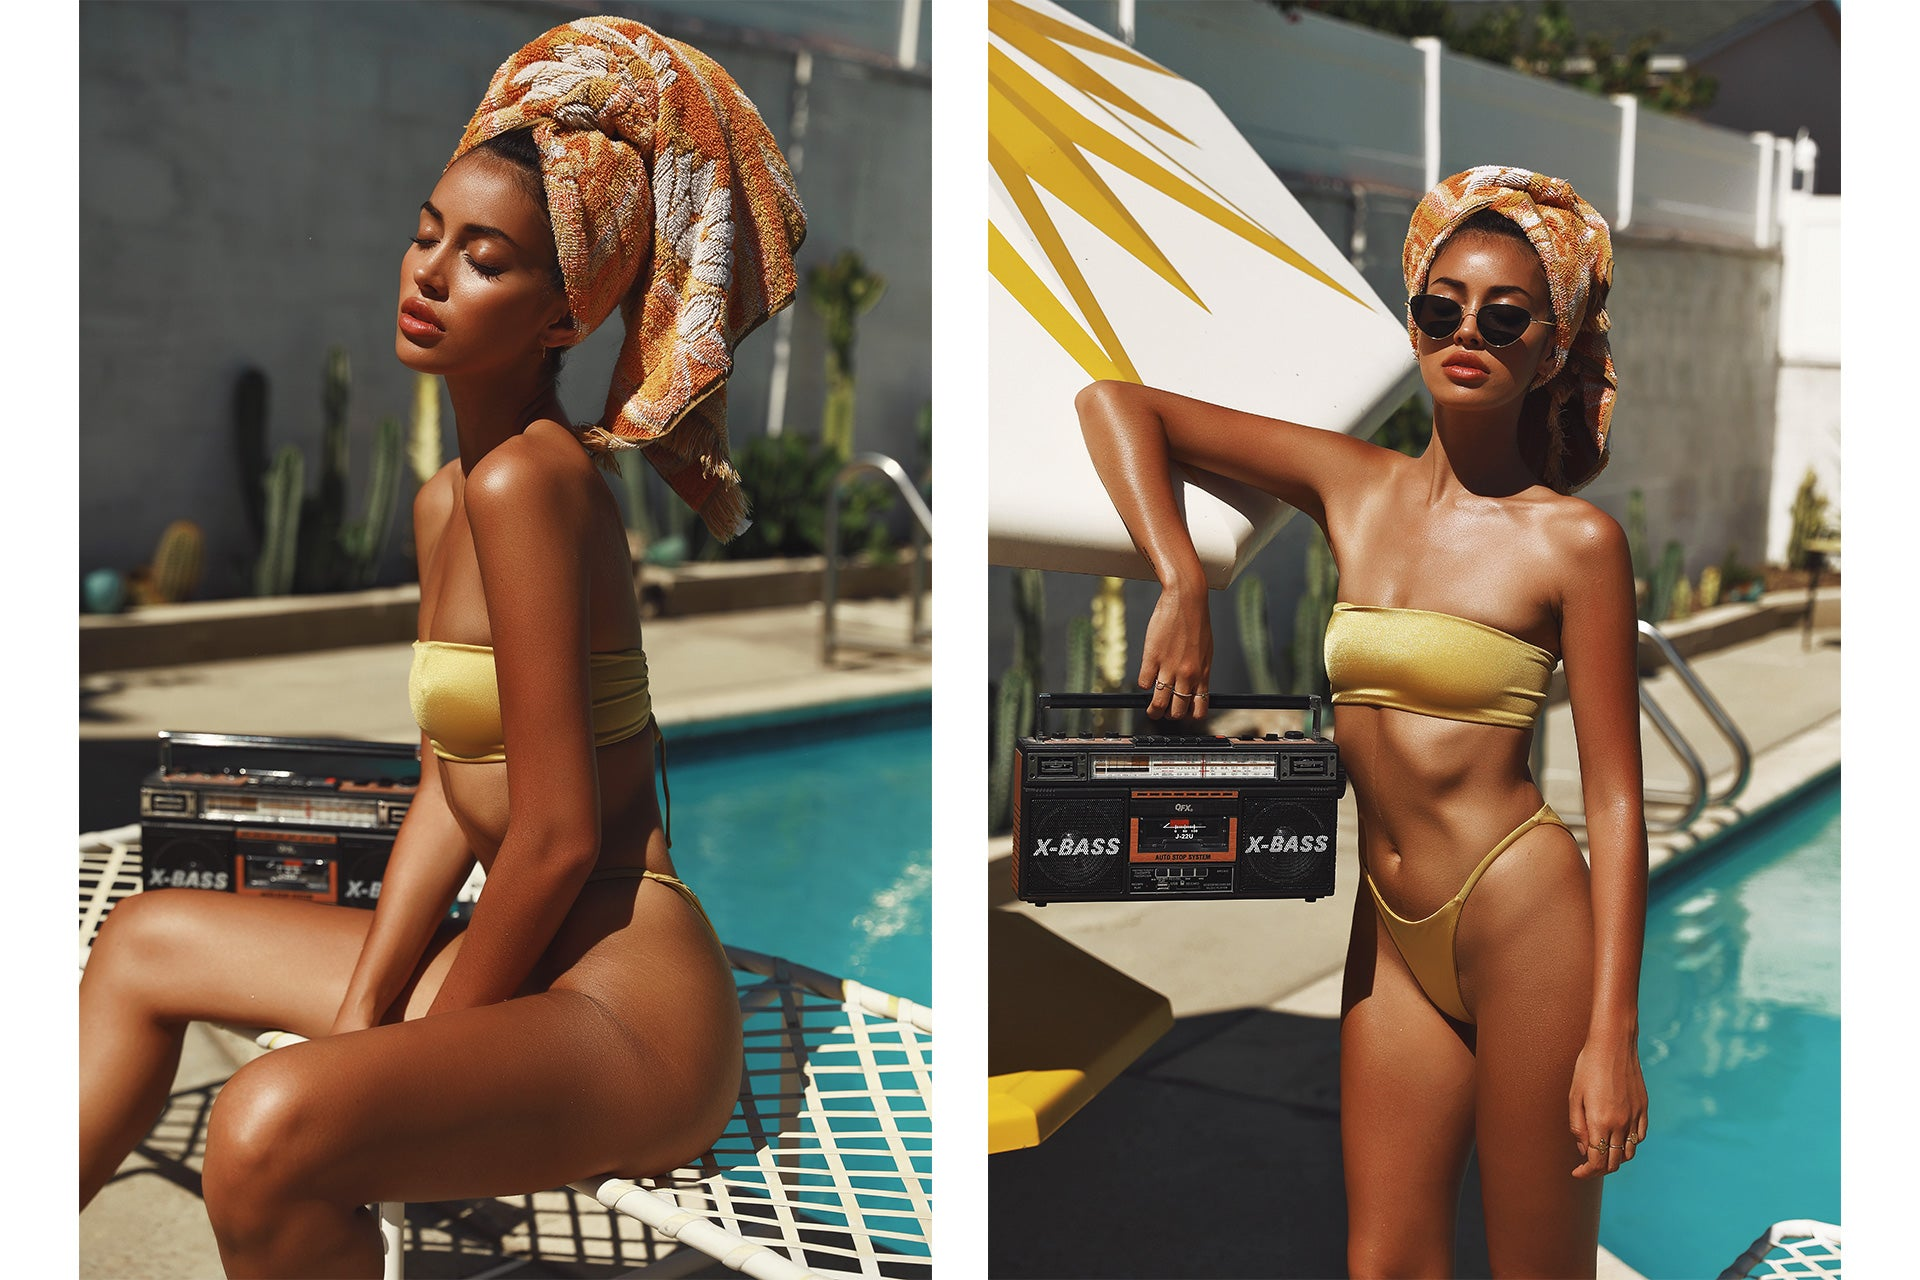 Cindy Kimberly wearing the Delight So Chic Sweet Sunrise Bandeau Bikini Set while sitting on a pool lounge chair